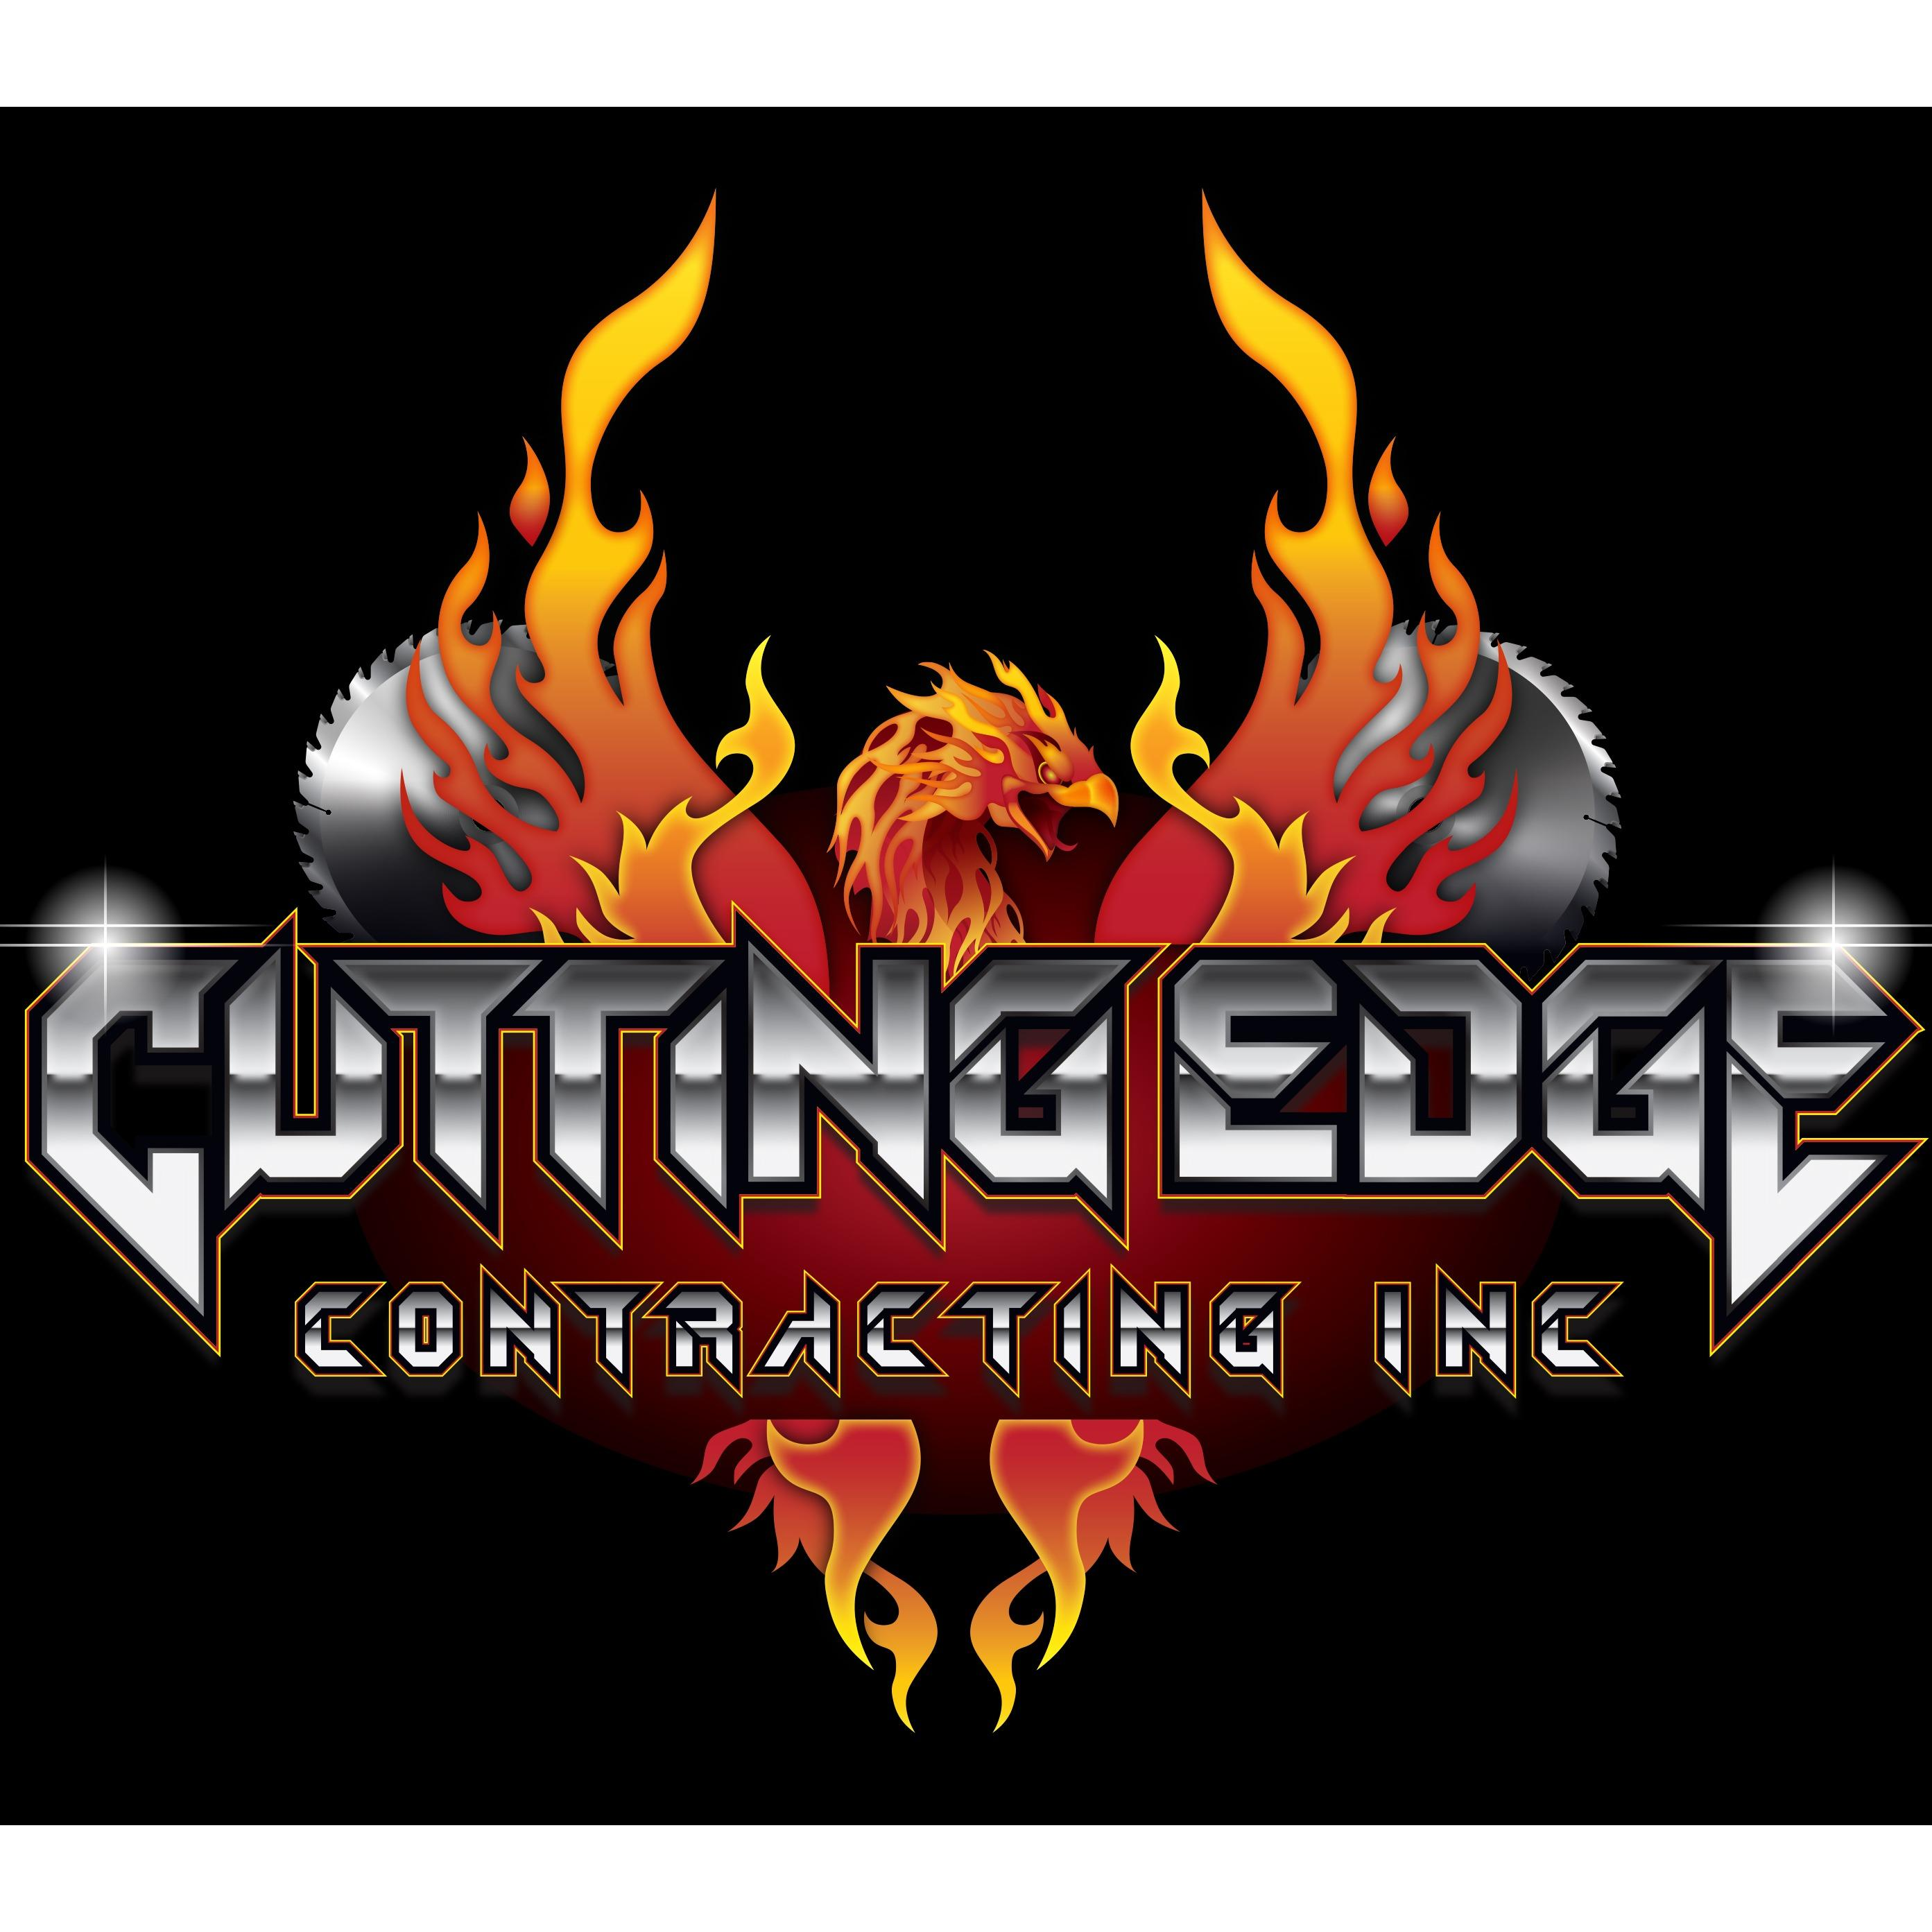 Cutting Edge Contracting